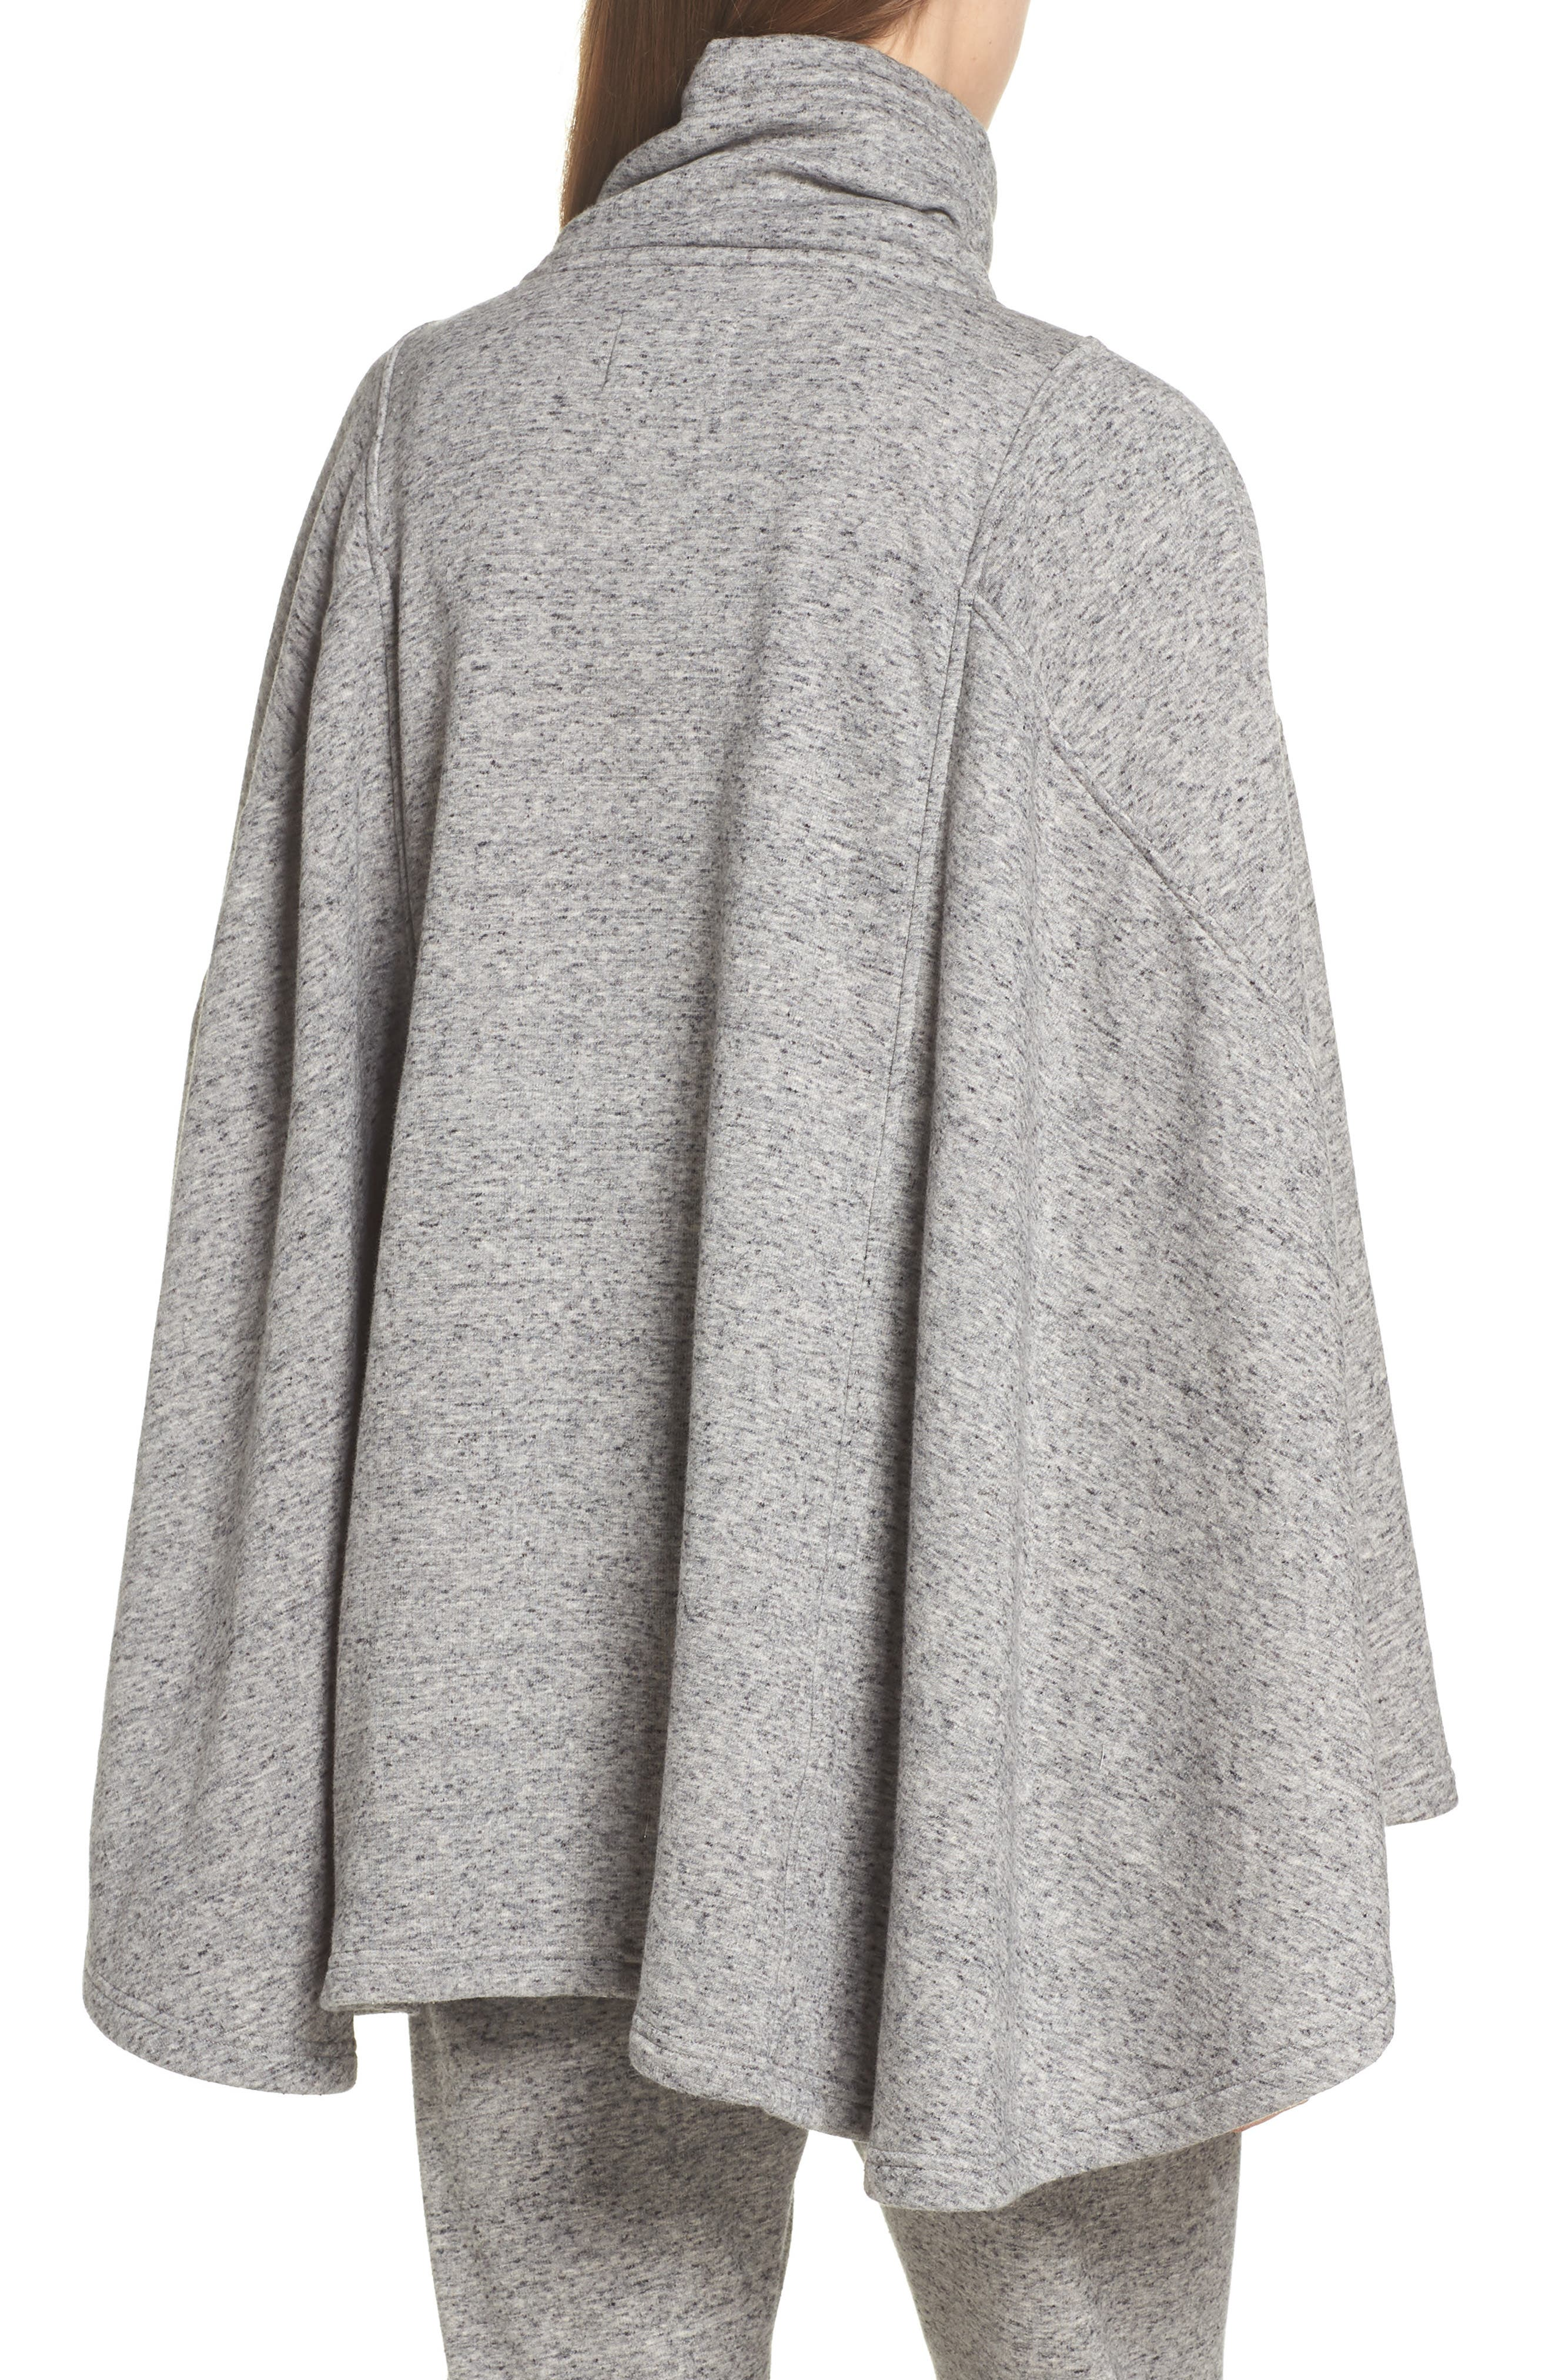 Pichot Turtleneck Poncho,                             Alternate thumbnail 2, color,                             GREY HEATHER